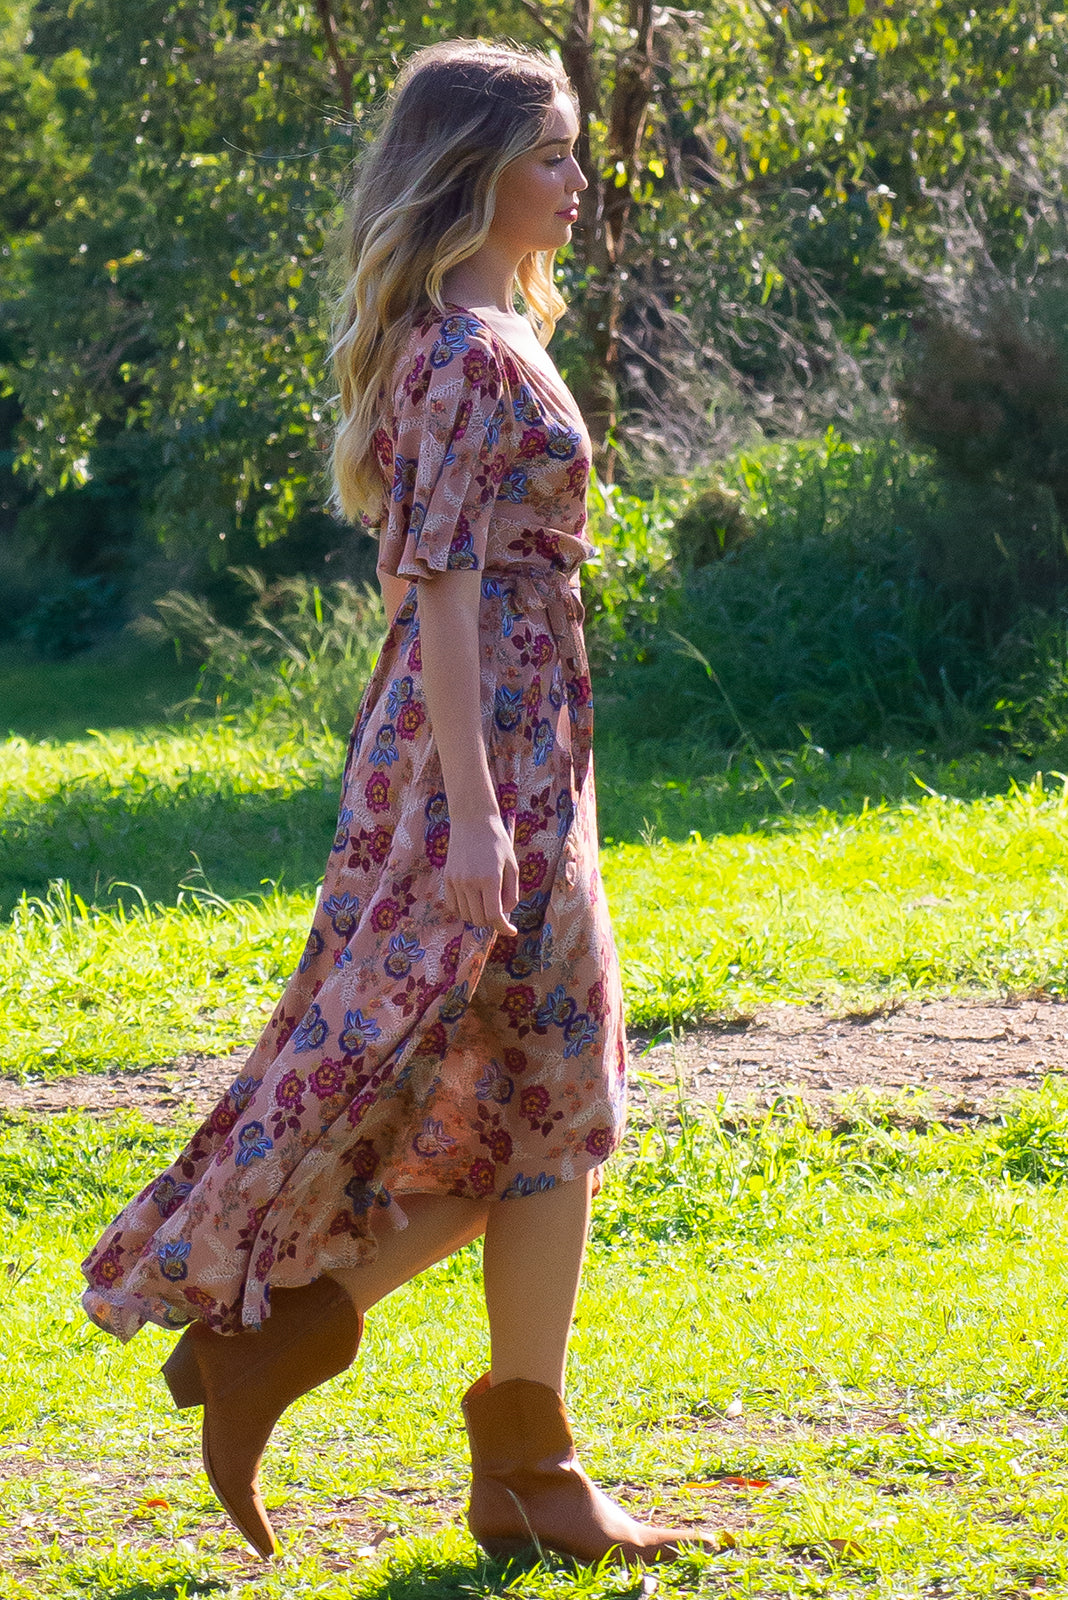 Cinnamon Caramel Maxi Wrap Dress features a beautiful romantic floral bohemian print on a soft woven crinkle textured rayon a, it has a petal sleeve and a flattering adjustable wrap waist